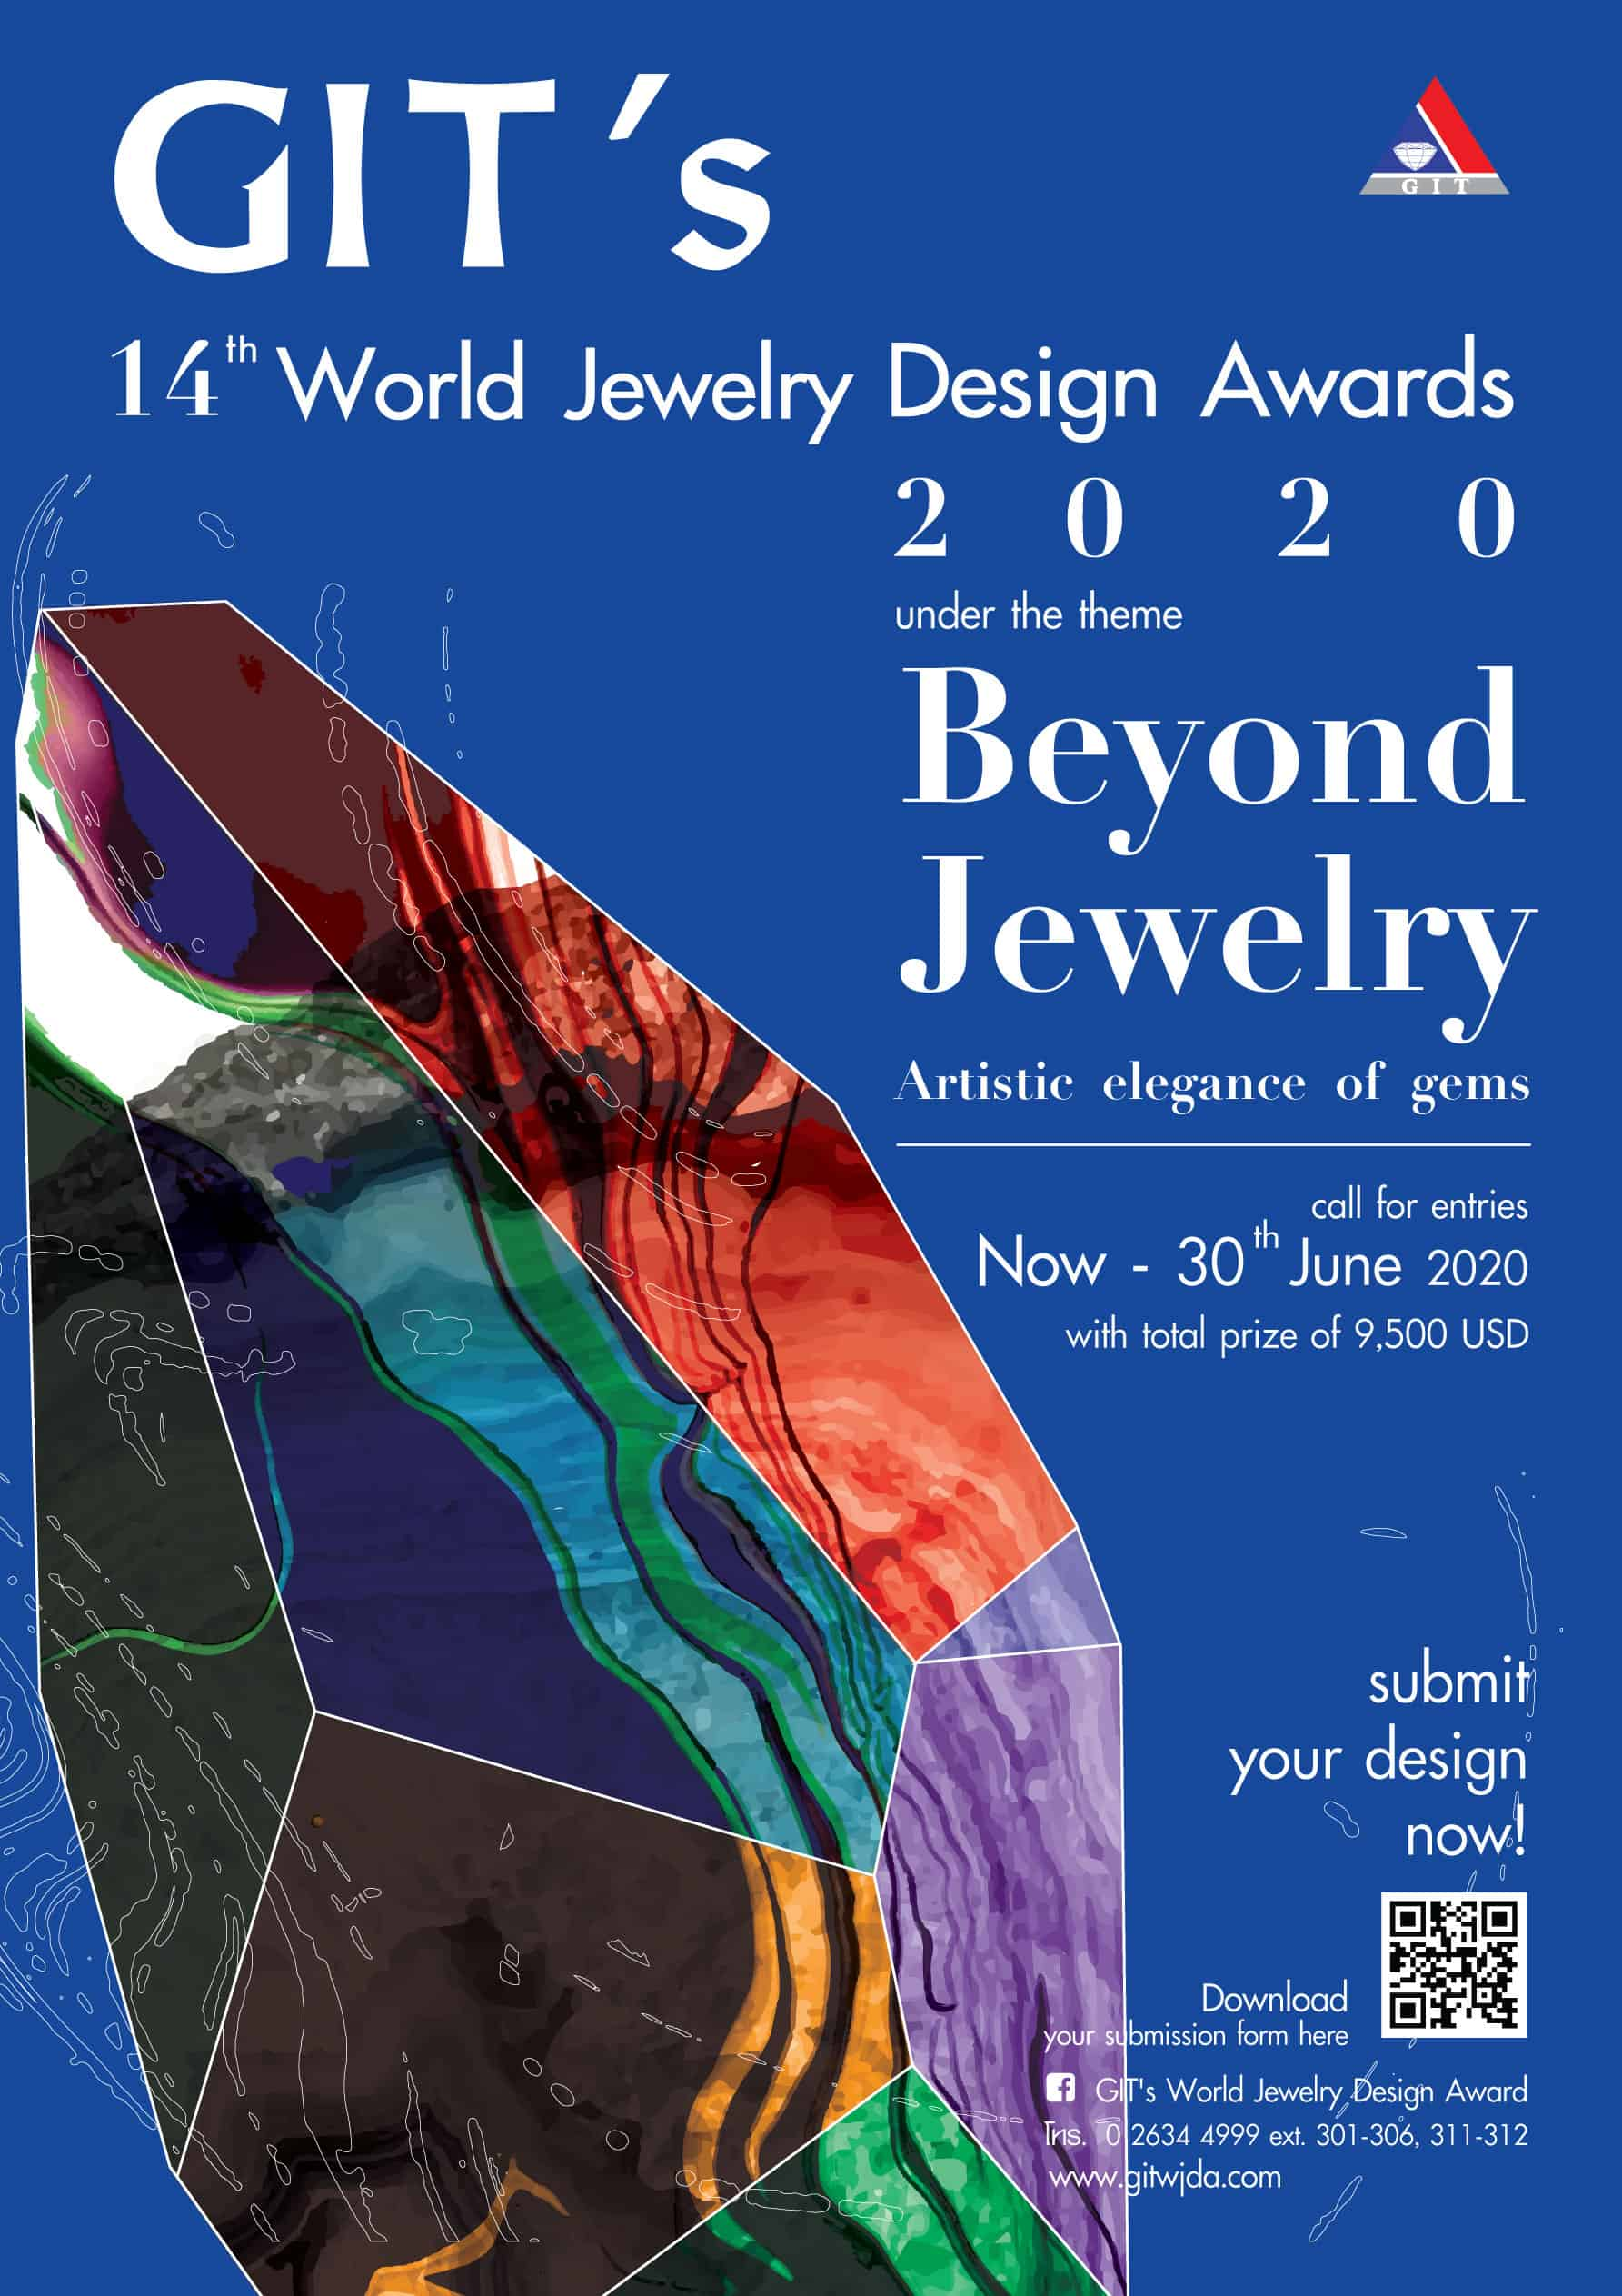 Thailand's GIT World Jewelry Design Award contest is open to applications